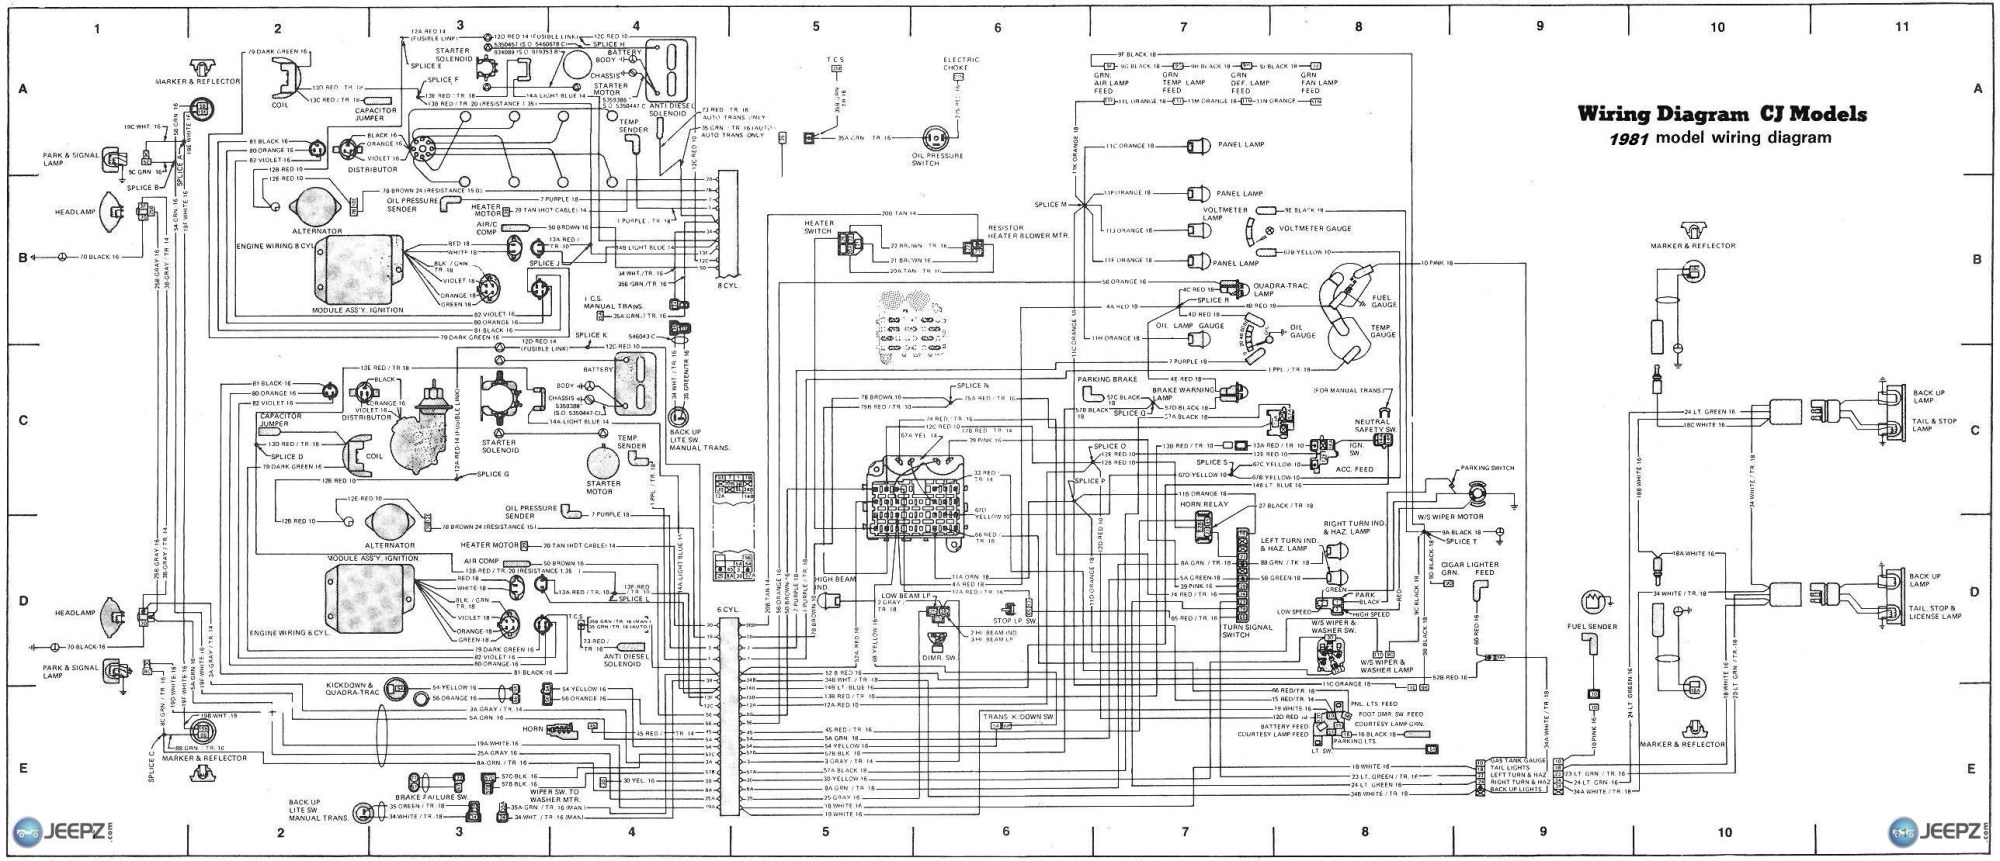 hight resolution of wiring harness cj 8 wiring diagram log wiring diagram for cj7 wiper motor wiring diagram for cj8